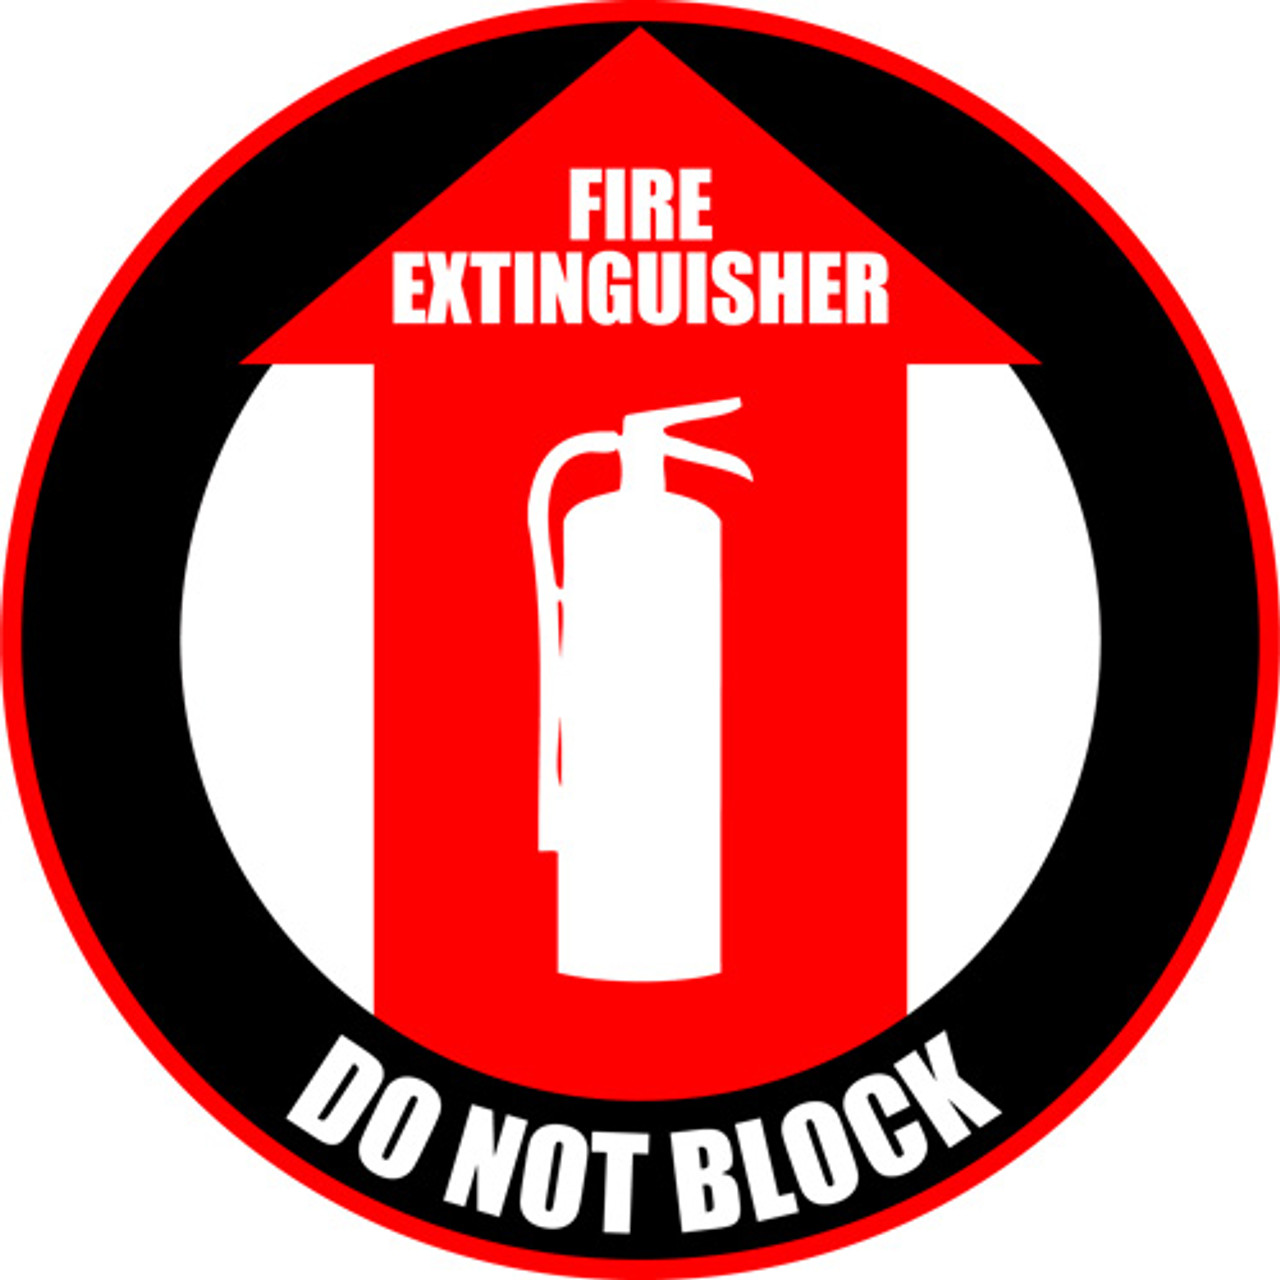 graphic regarding Printable Fire Extinguisher Signs identify Fireplace Extinguisher: Do Not Block Flooring Indication